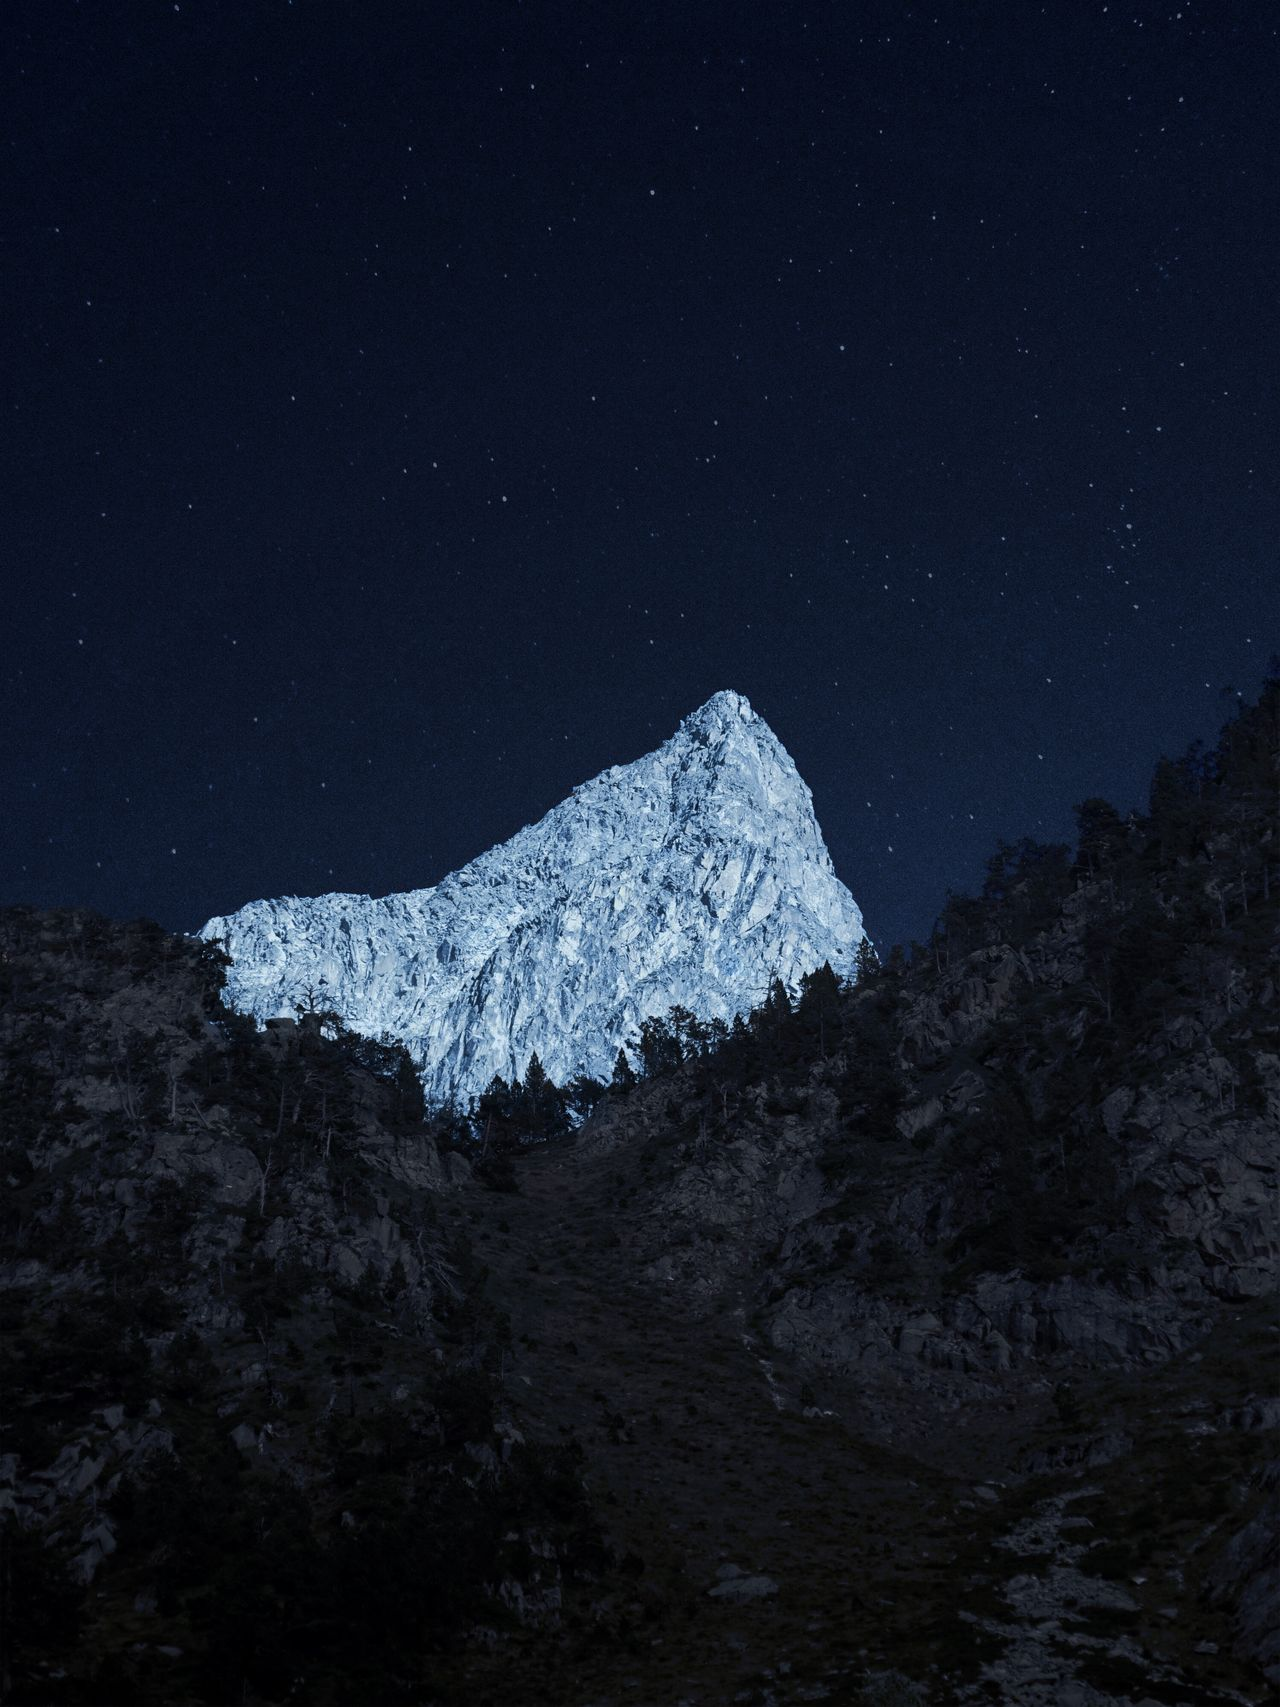 mountain mountains night Nightphotography moonlight beauty in Nature Nature cold temperature outdoors landscape astronomy EyeEmBestPics Empty Places EyeEm Best Edits TheWeekOnEyeEM Night Photography EyeEm Best Shots